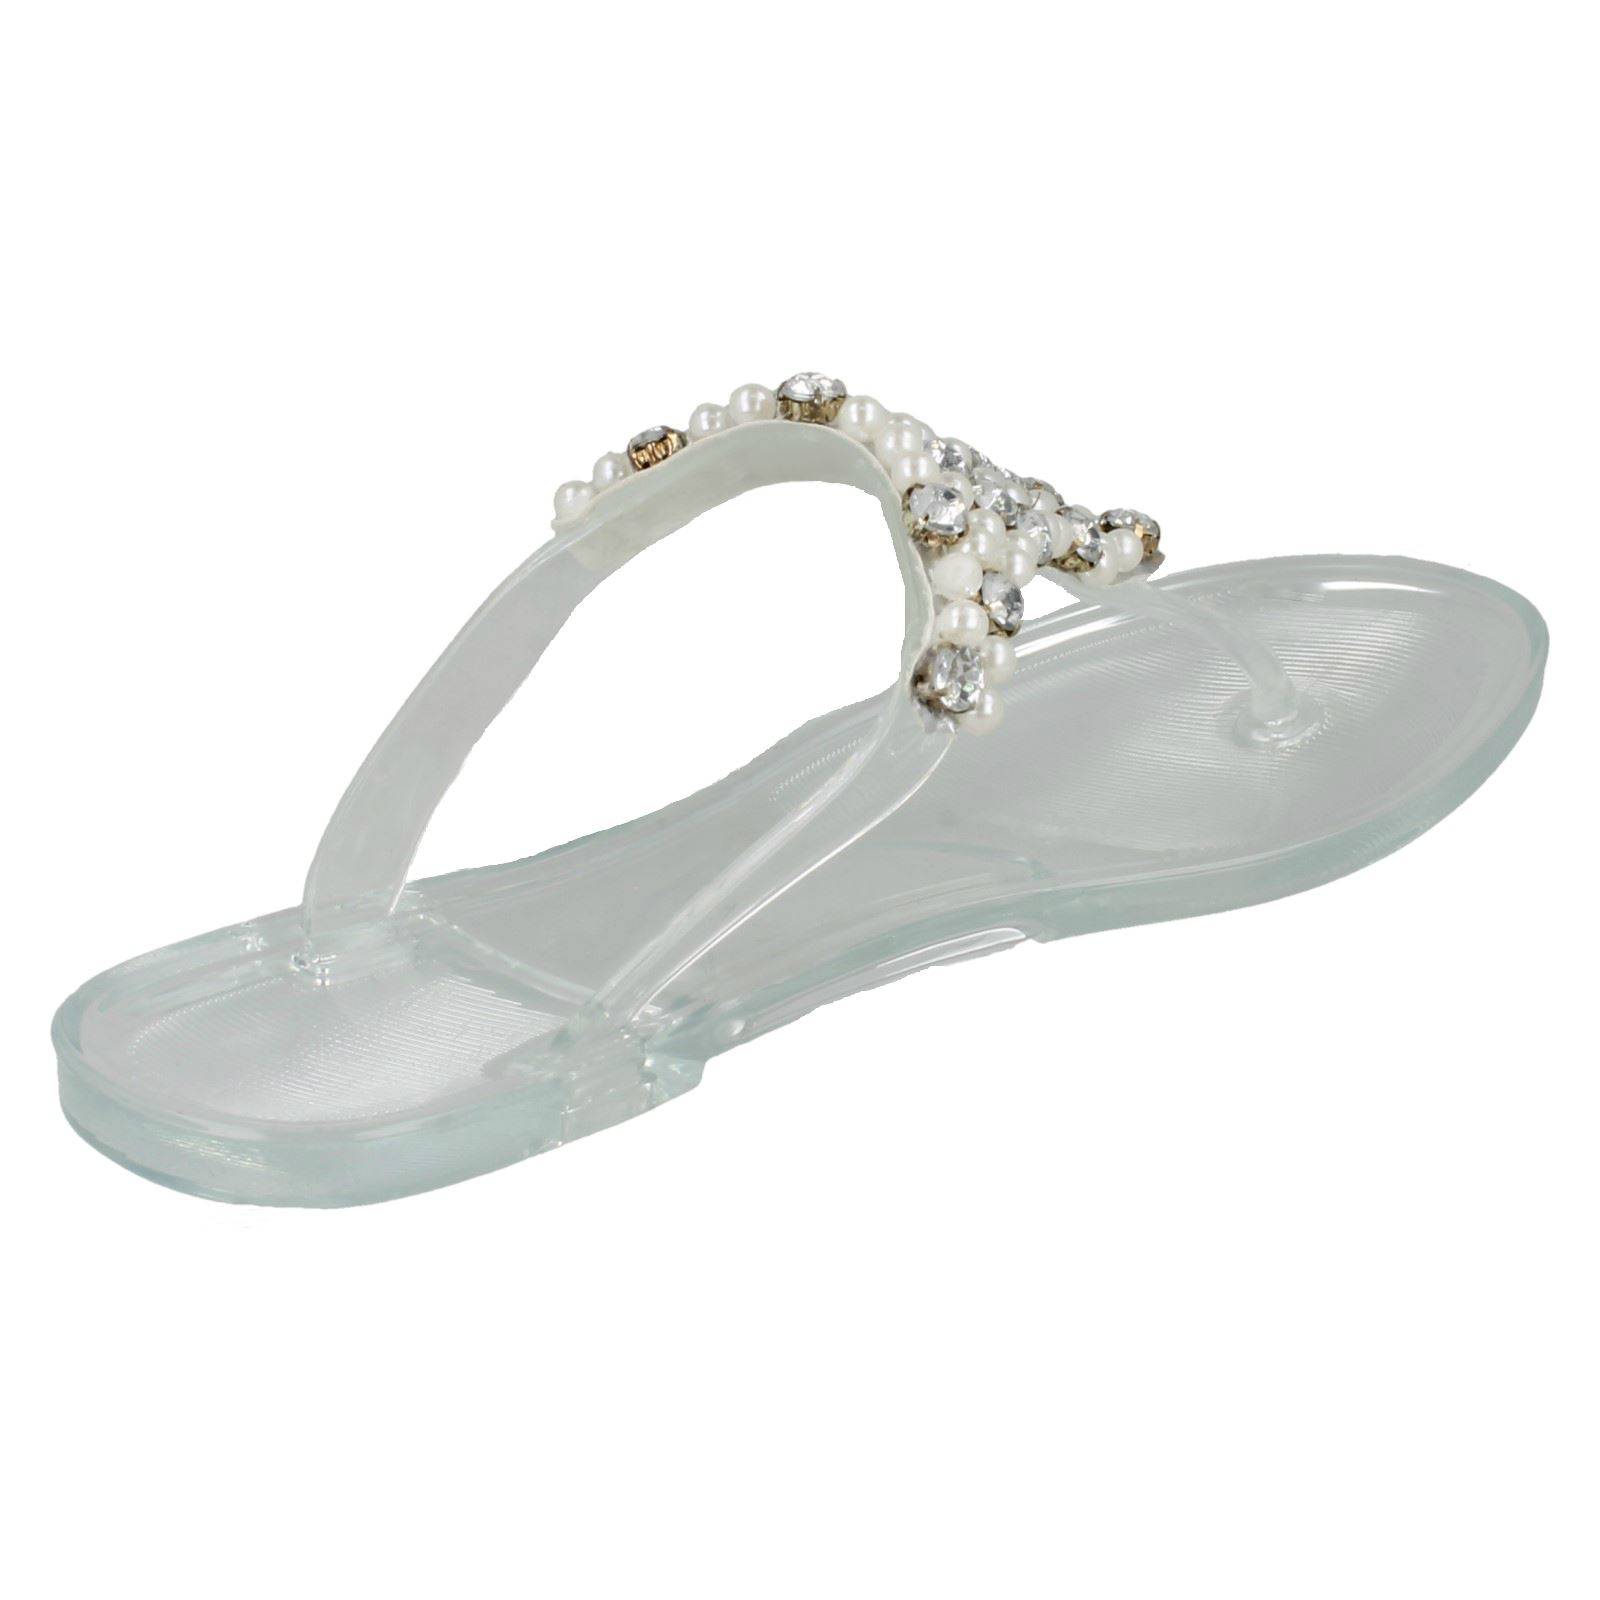 Ladies Spot On Flat Metallic Toe Post *Jelly Sandals*